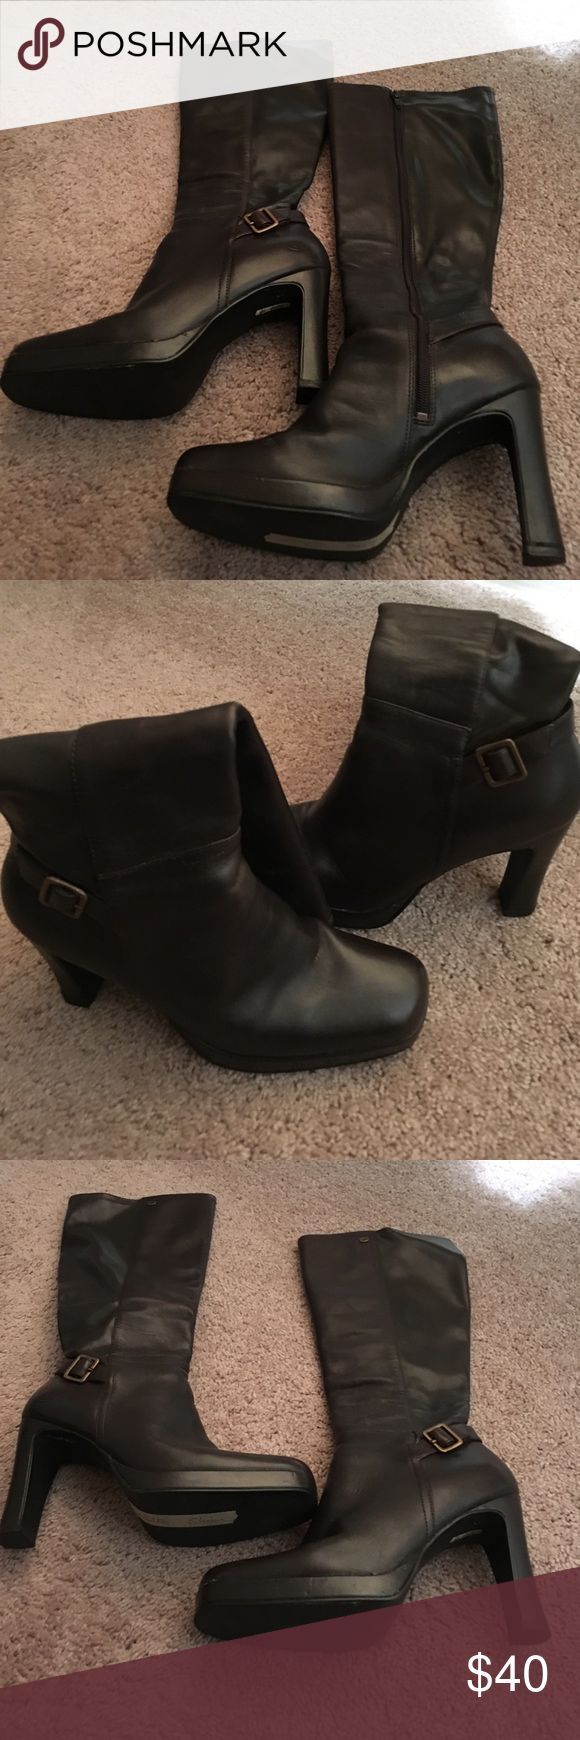 Knee High Brown Boots Size 9 Brown zip up boots knee high with heel Shoes Over the Knee Boots